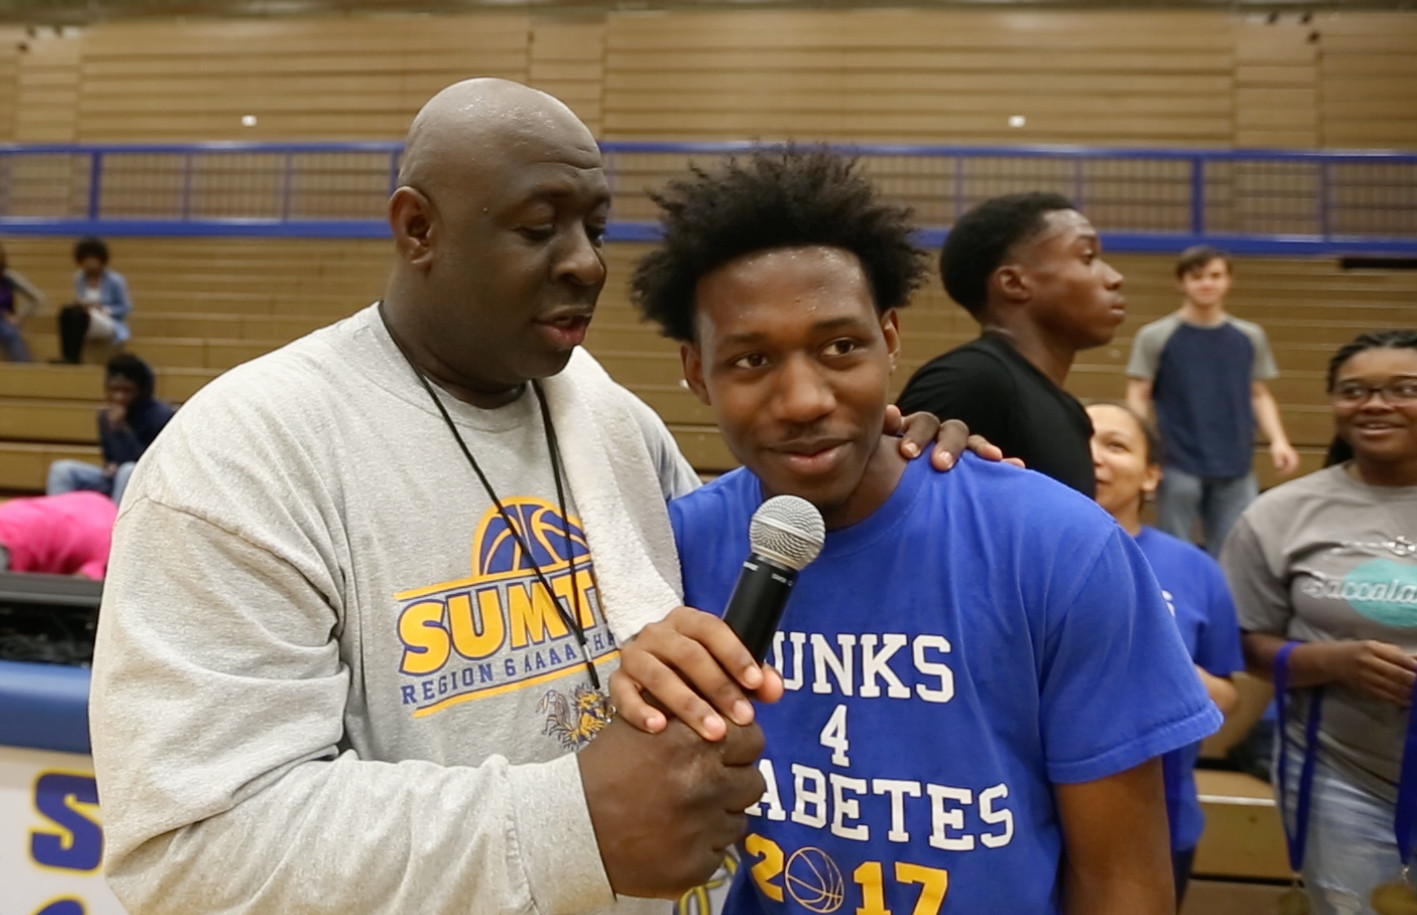 Sumter High School employee Ron McBride interviews 12th-grader Tre'zjon Bell at the Dunks for Diabetes event held Thursday at Sumter High School.